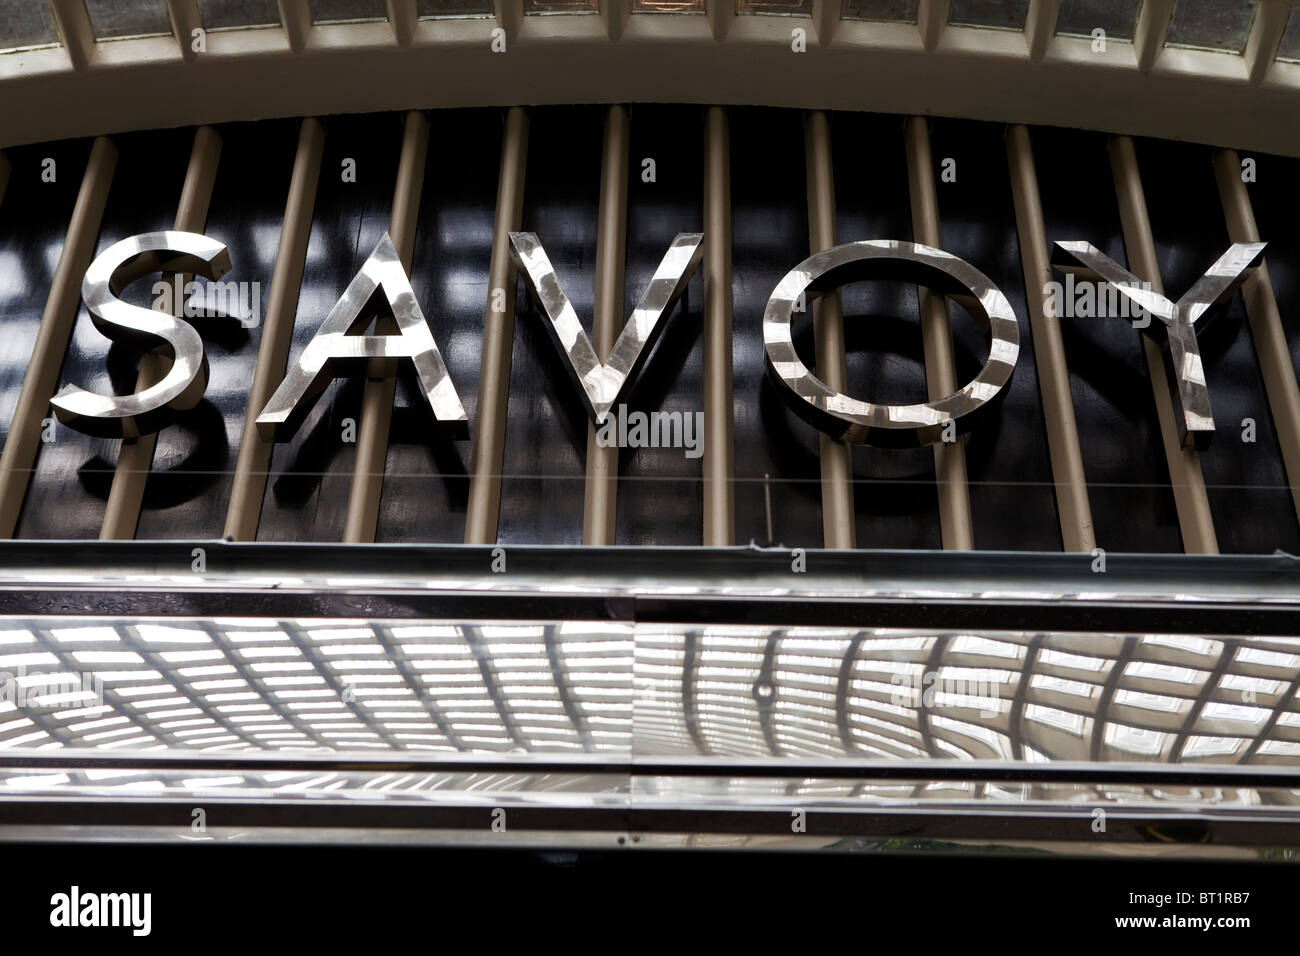 Savoy Hotel in London. Reopened in October 2010 after a complete refurbishment. Photos show the logo above the River - Stock Image